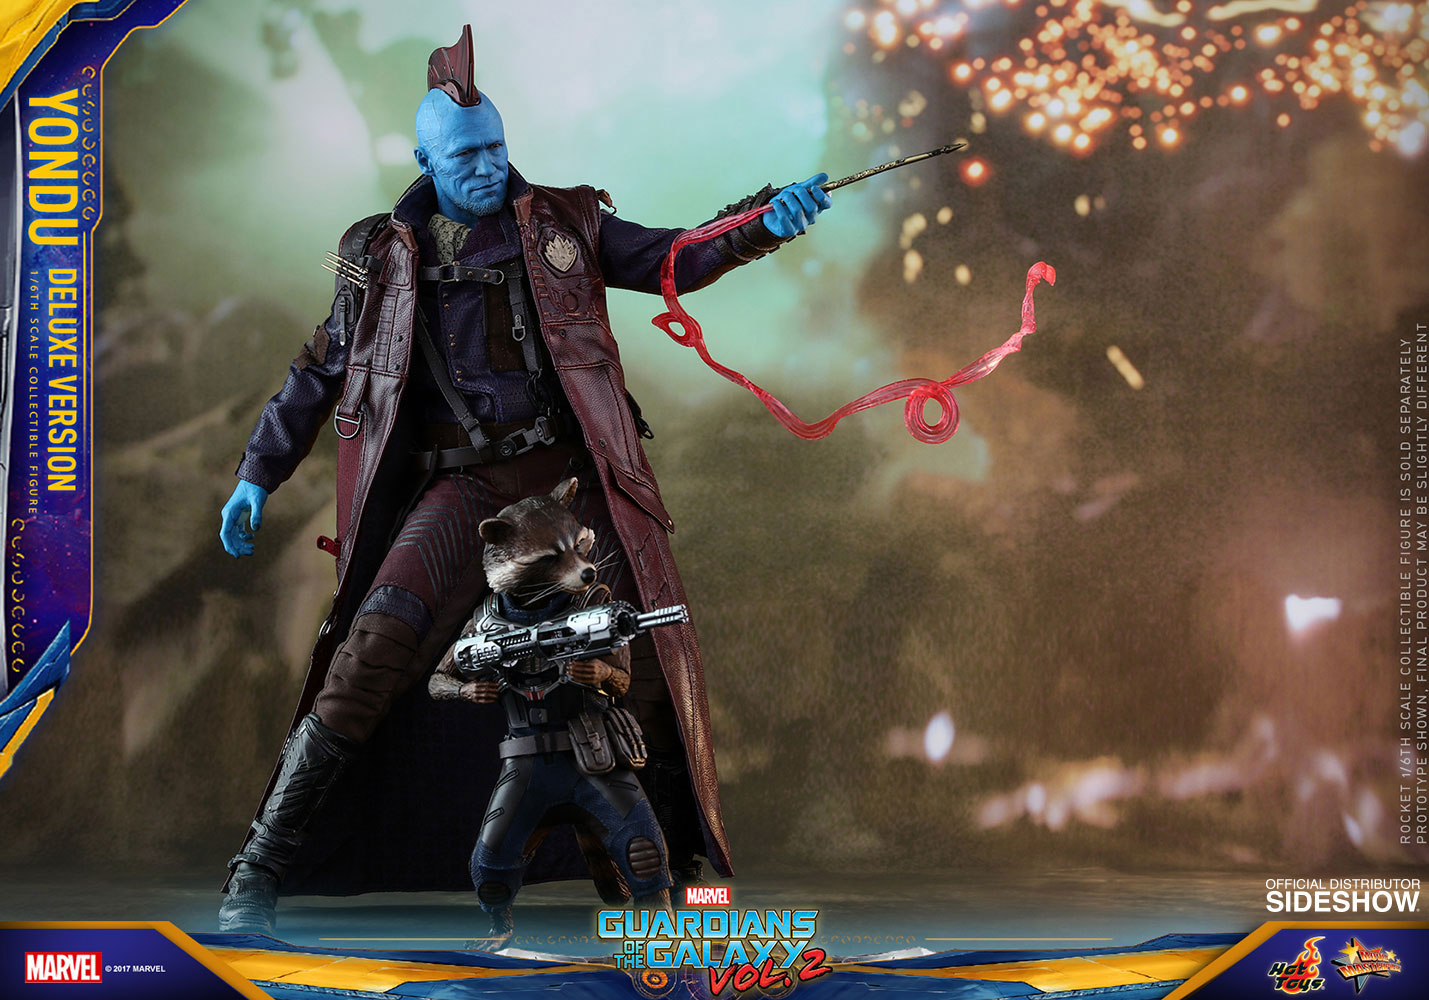 guardians-of-the-galaxy-2-yondu-hot-toys-figure-1